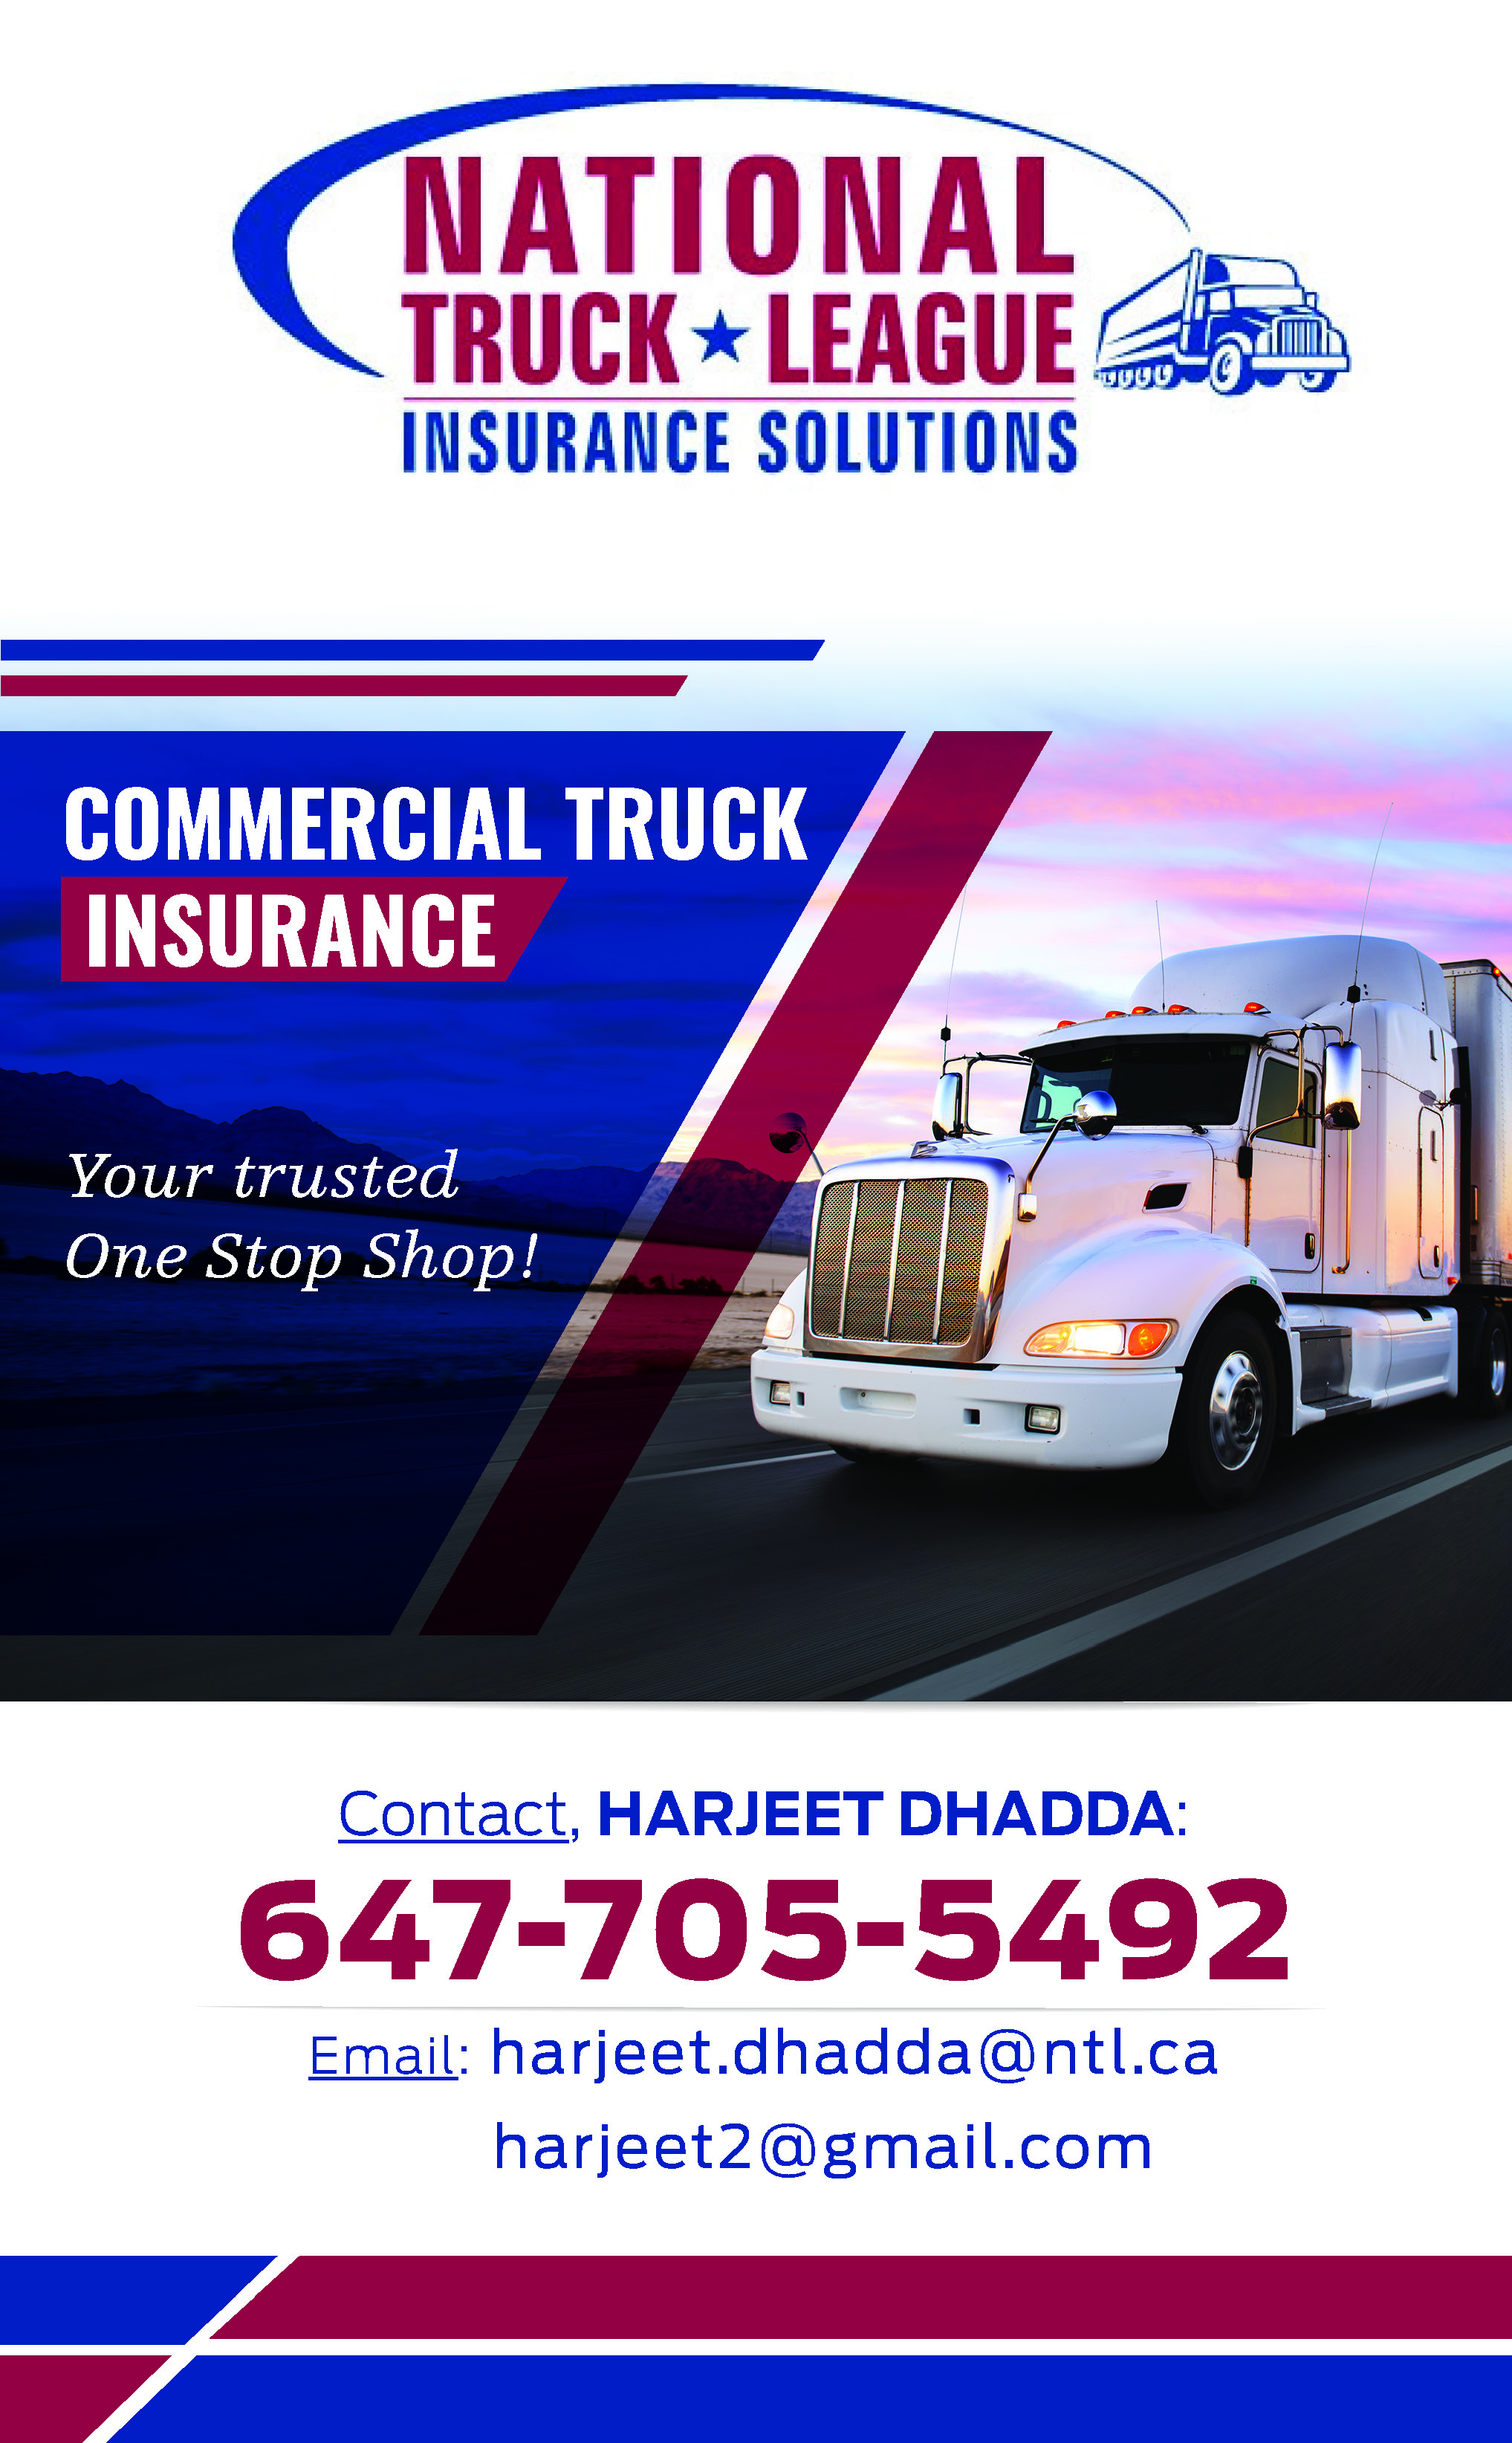 national-truck-league-insurance-solutions-S9XN5Sj.jpeg